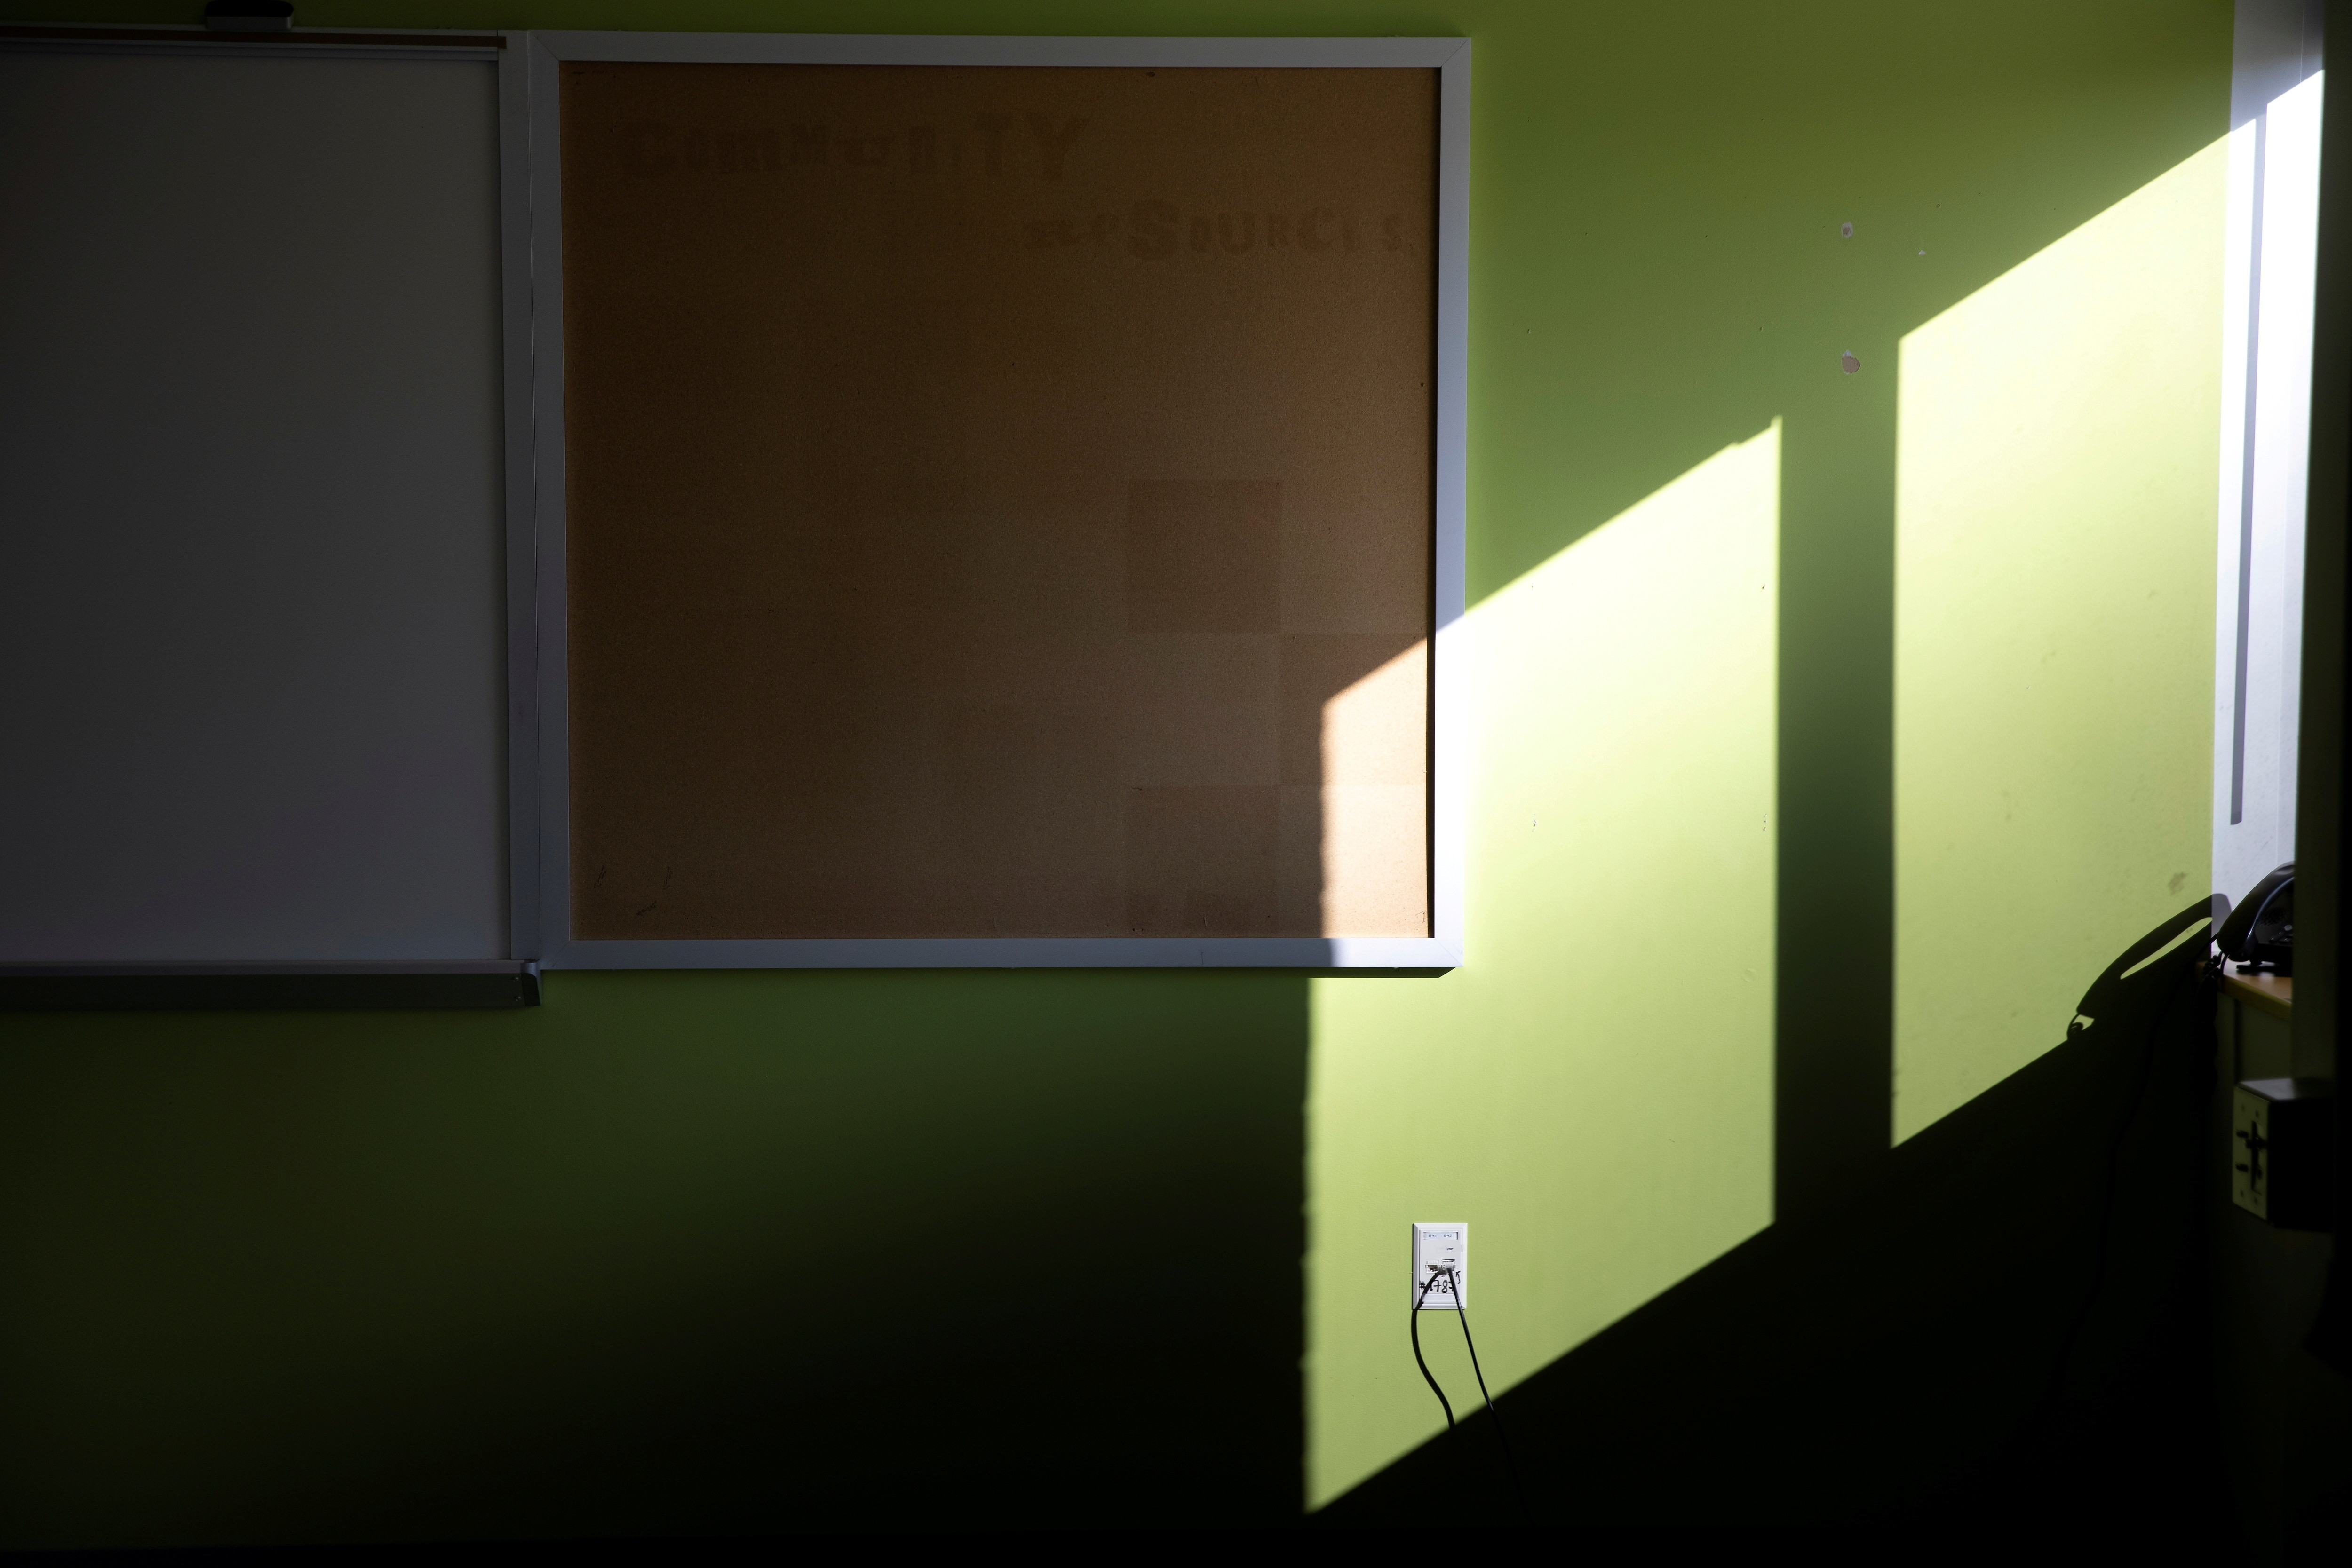 An empty tack board hangs inside a temporary isolation room ahead of in-person learning, amid the coronavirus disease (COVID-19) pandemic, at the Jefferson-Houston School in Alexandria, Virginia, U.S., February 23, 2021. REUTERS/Tom Brenner     TPX IMAGES OF THE DAY - RC2PYL9L62Z5